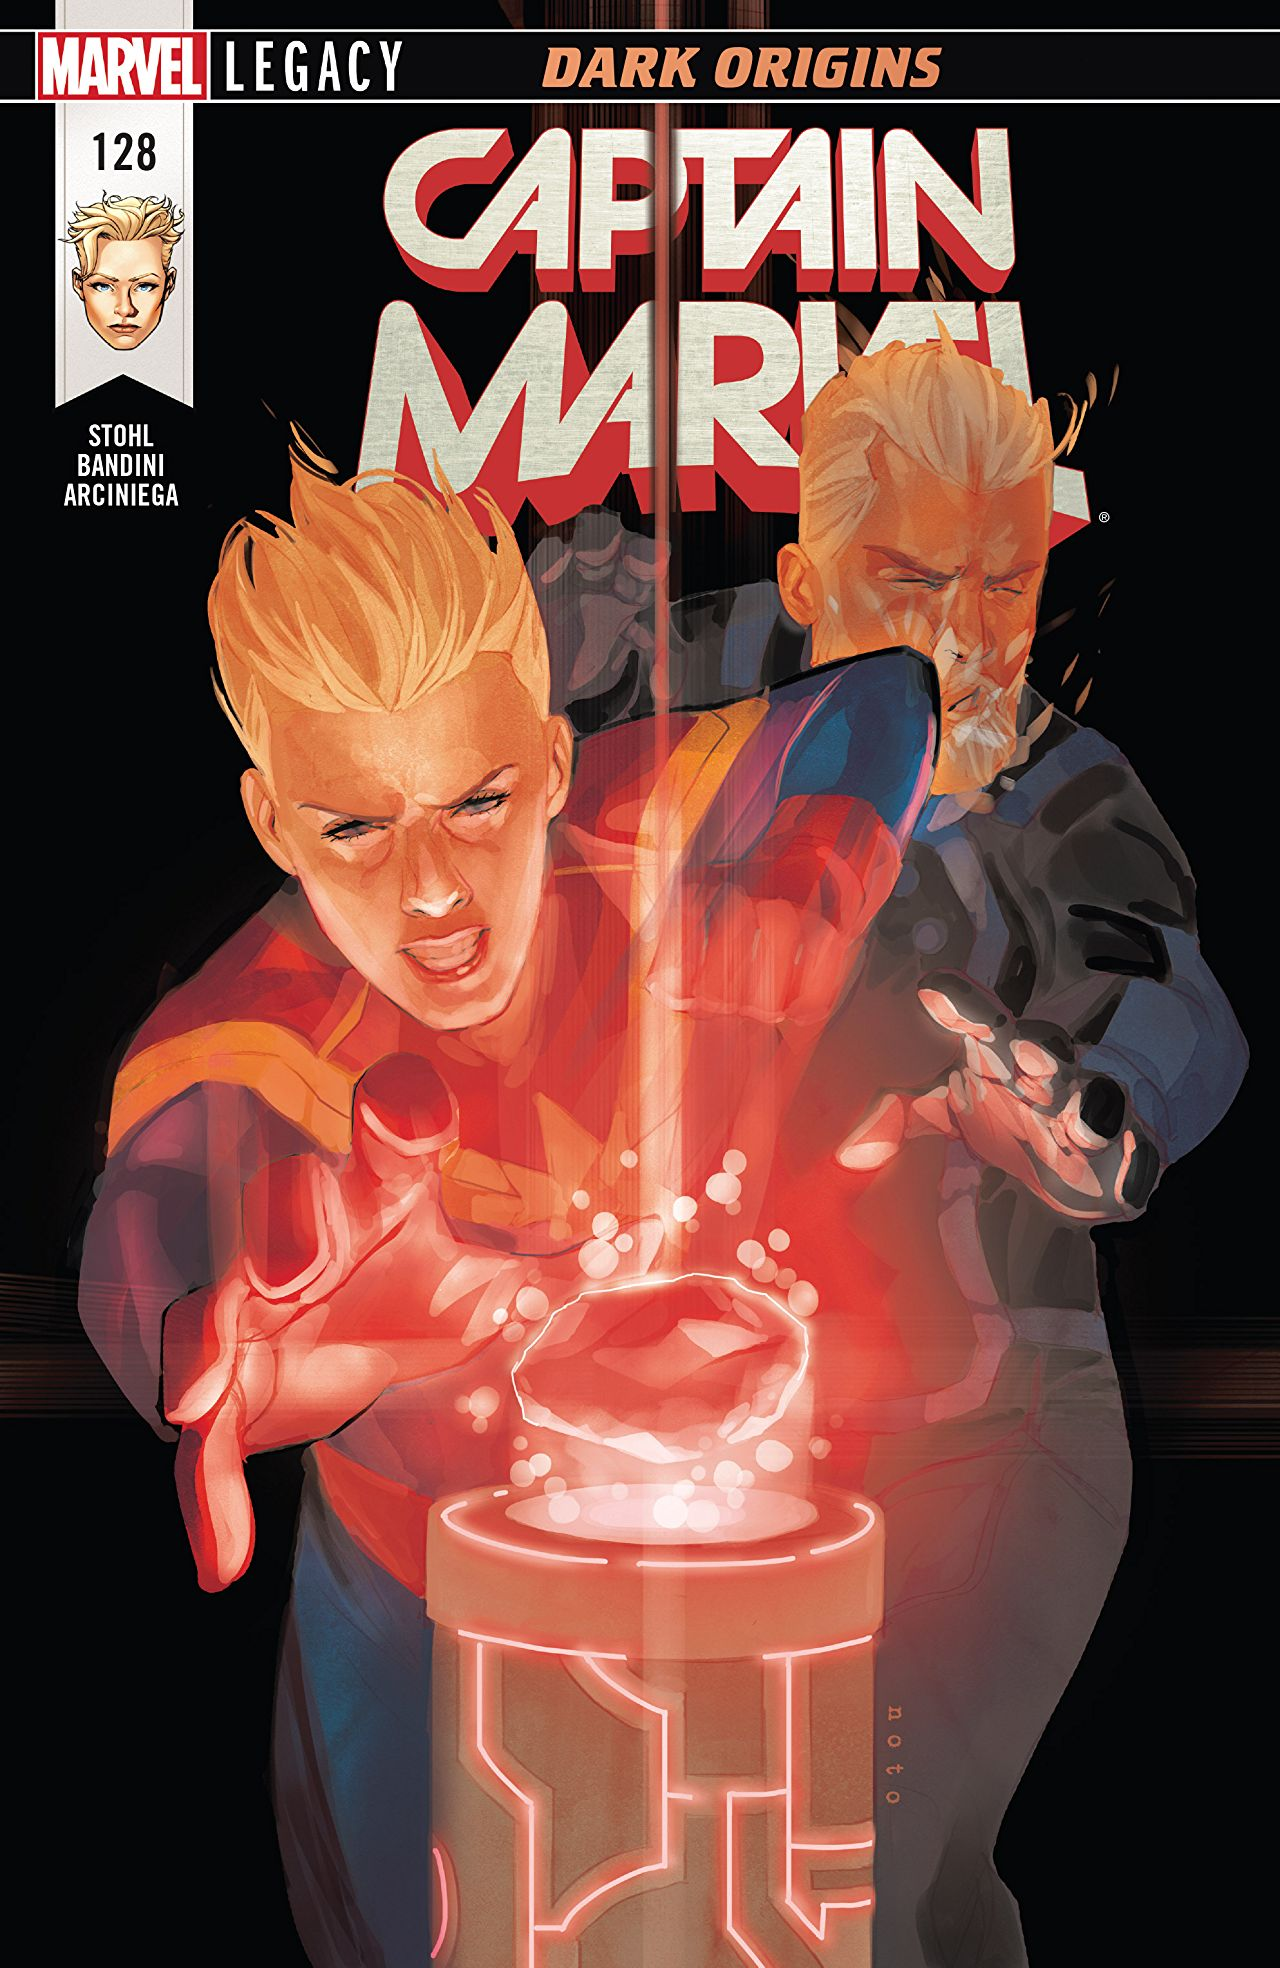 'The Mighty Captain Marvel Vol. 3: Dark Origins' review: Delightful and infectiously entertaining